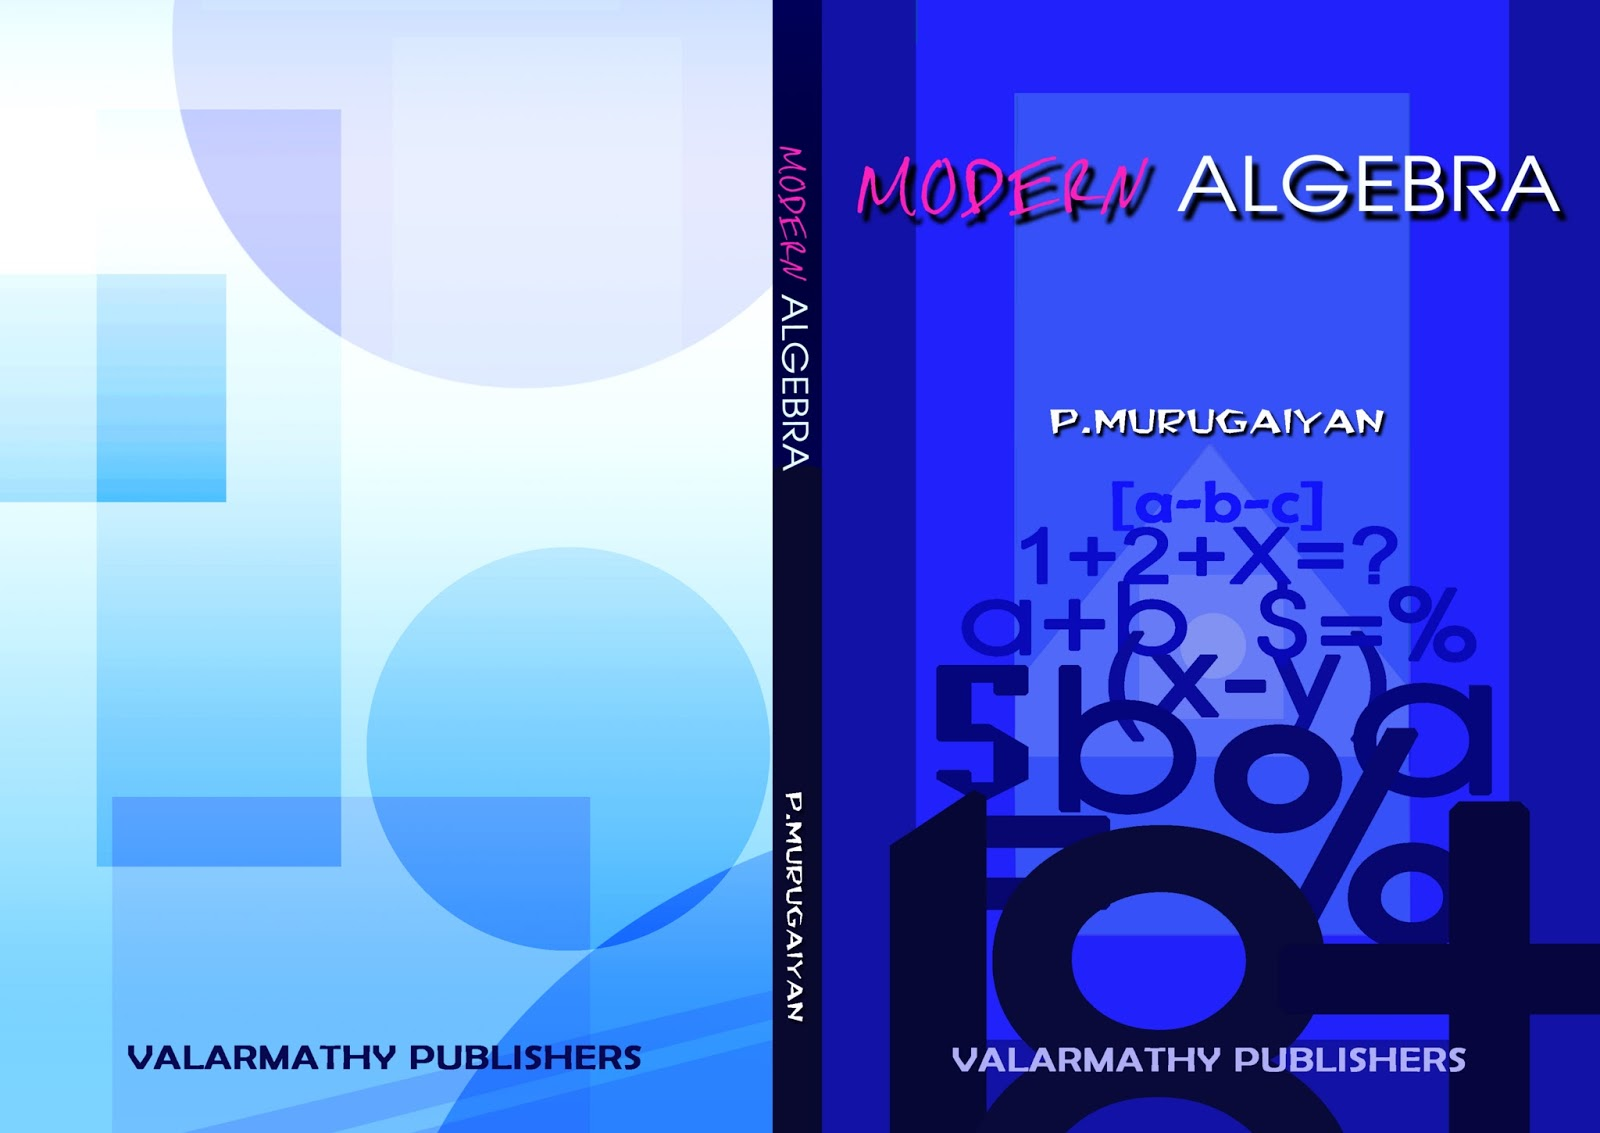 Book Cover Design Learn : Amudhan art design book cover designs study books